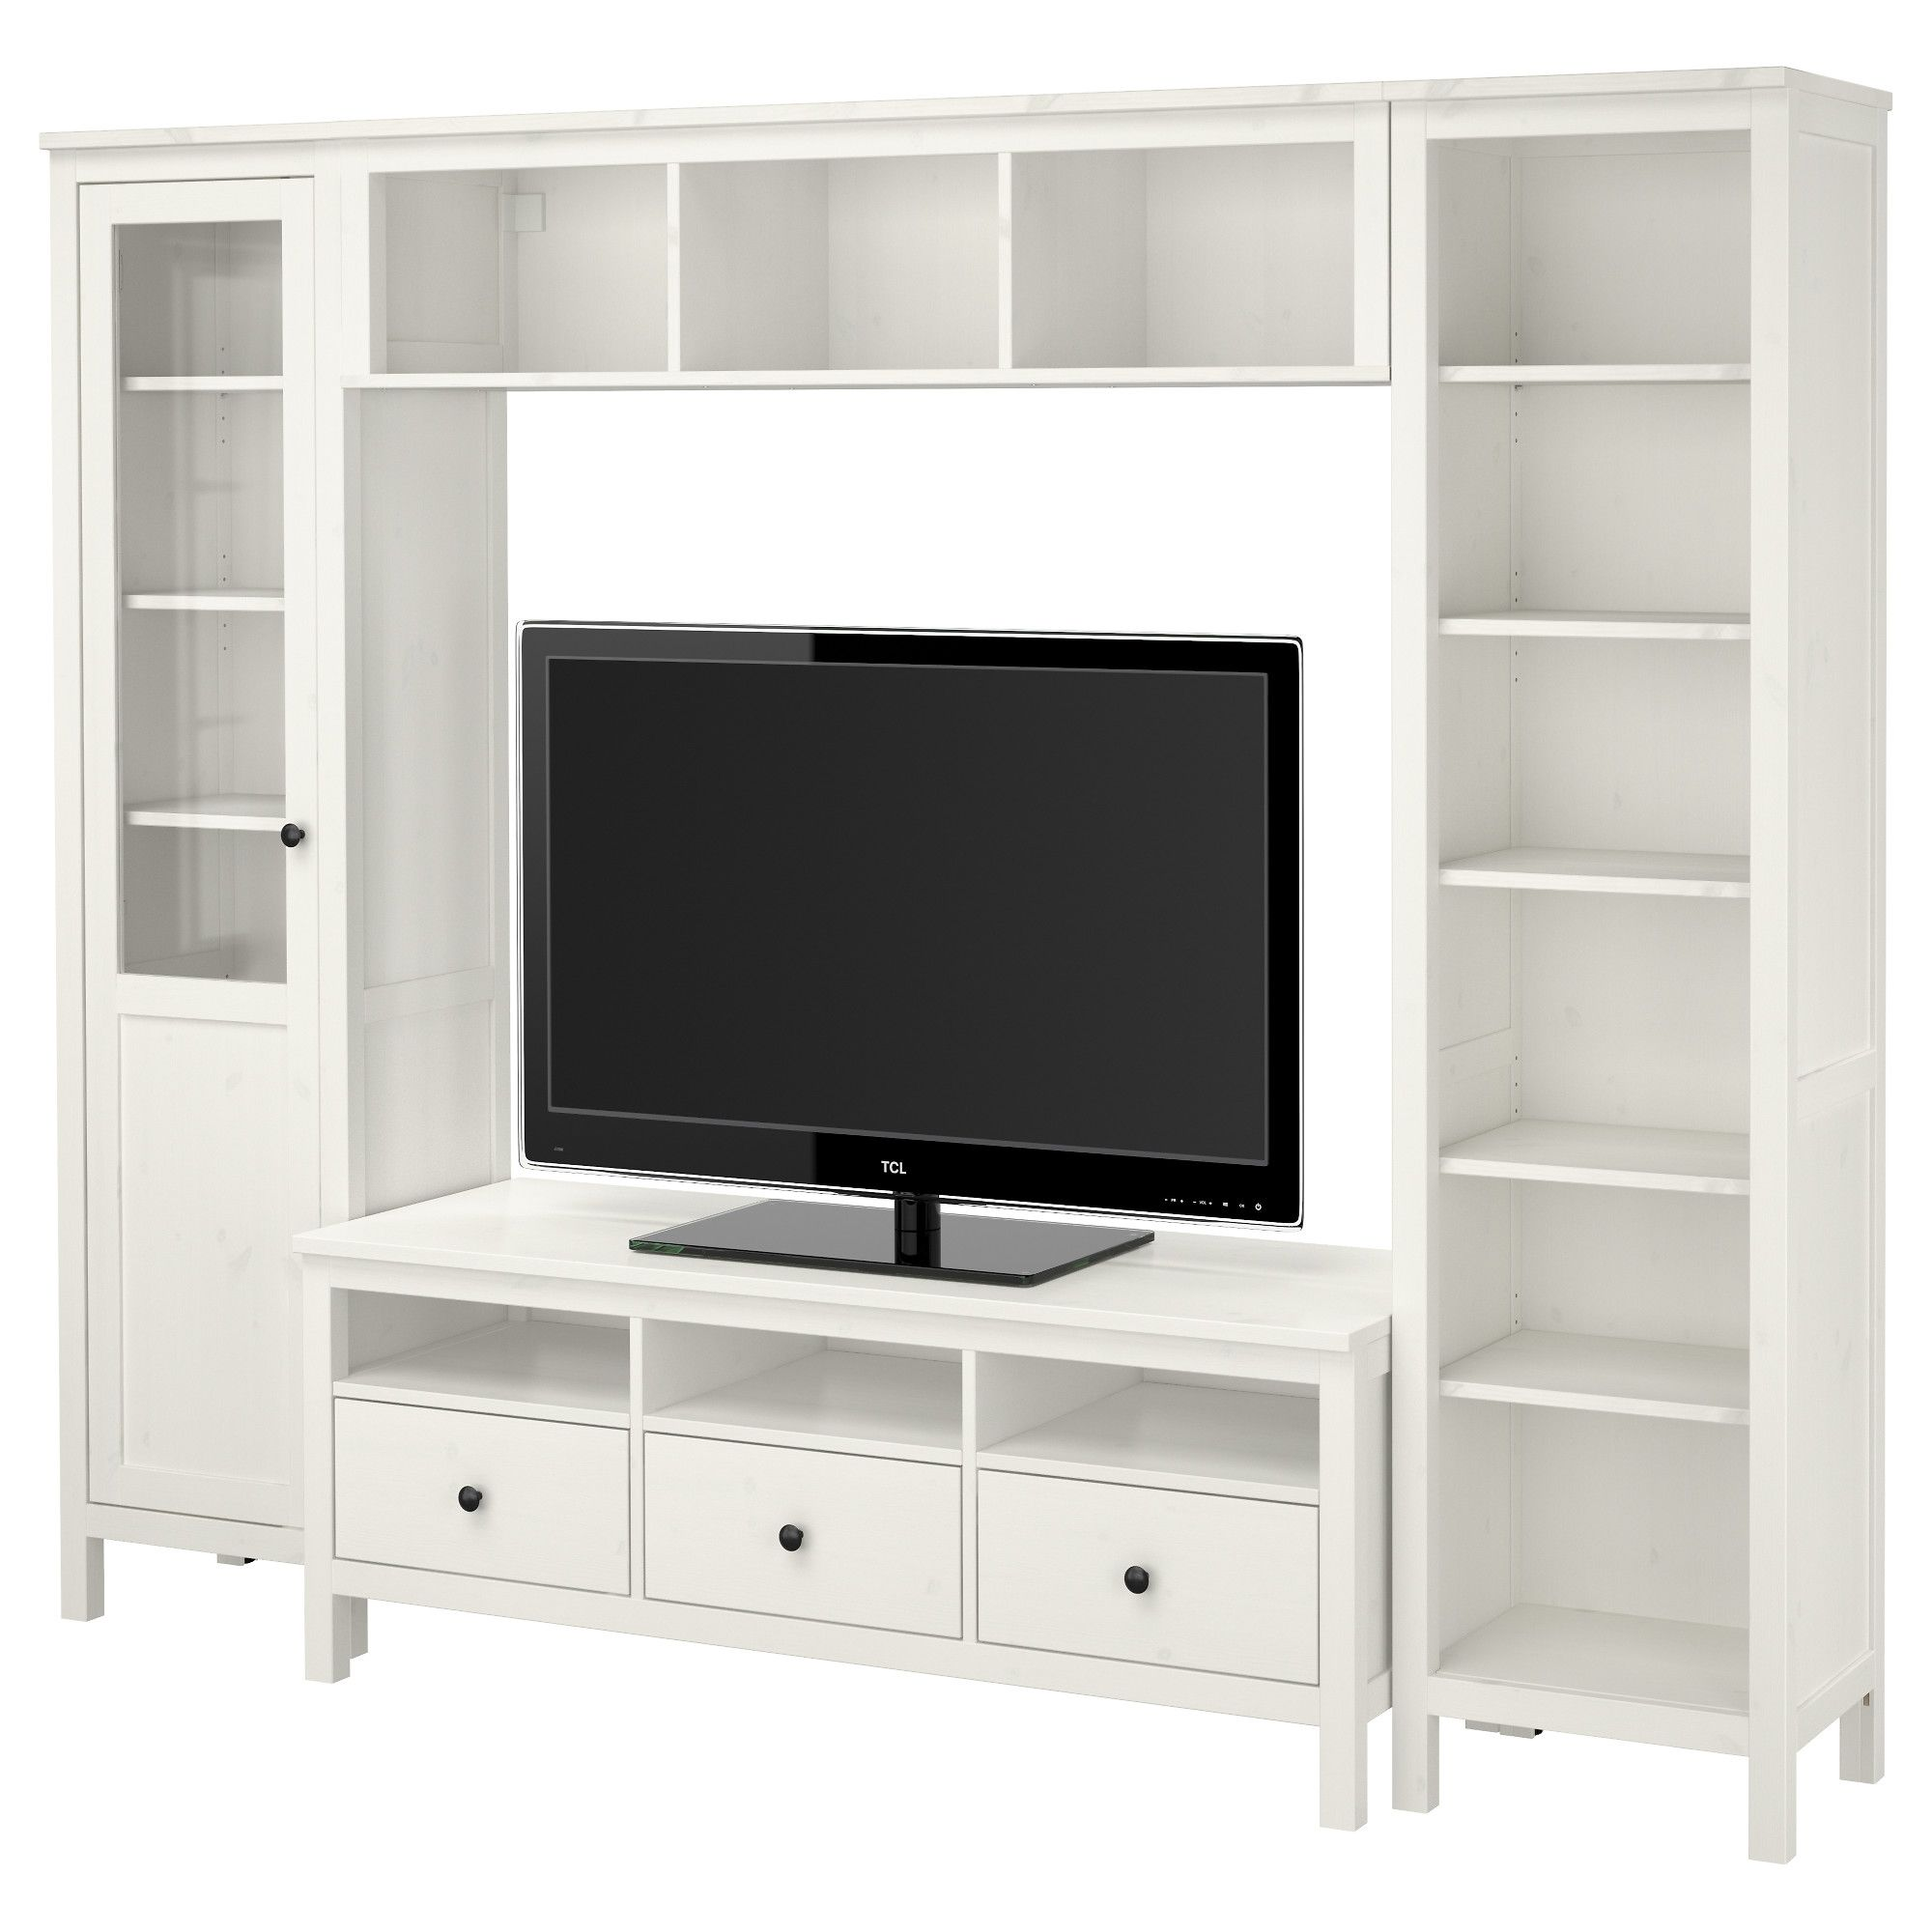 Hemnes Tv Storage Combination White Stain Ikea Width 97 1 4  # Ikea Meuble Tv Mural